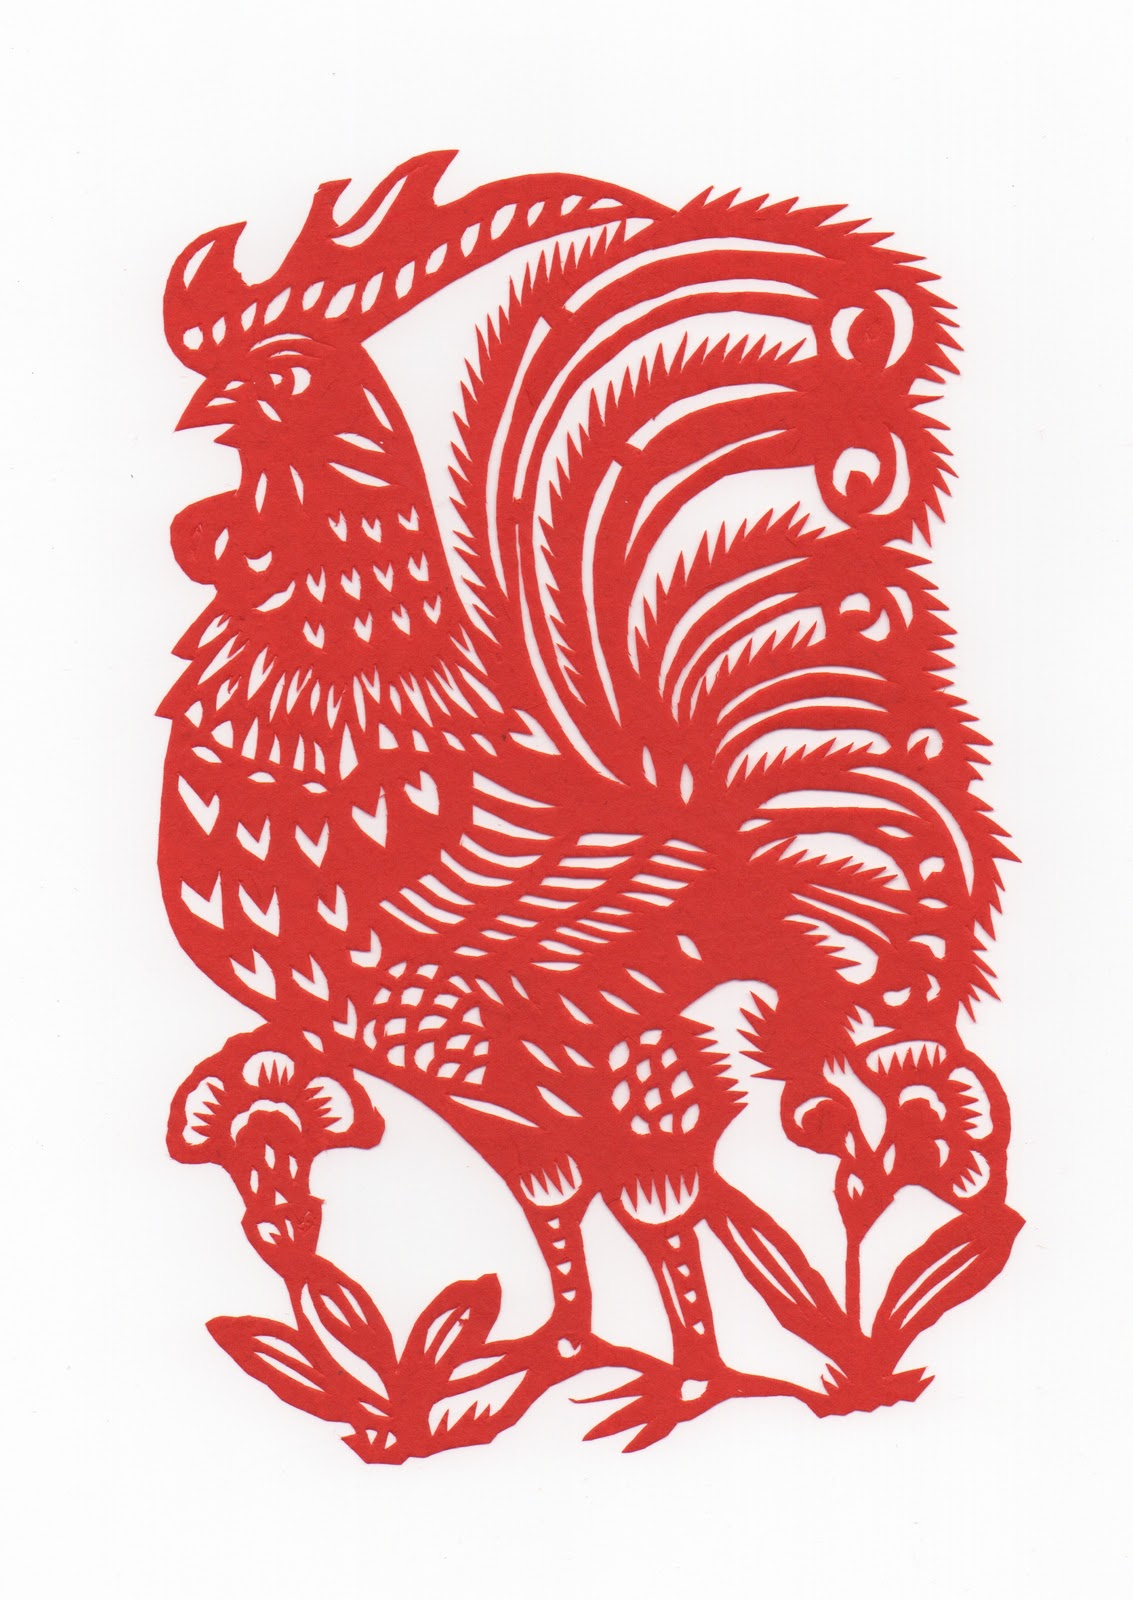 Chinese New Year Rooster Beautiful new year cards